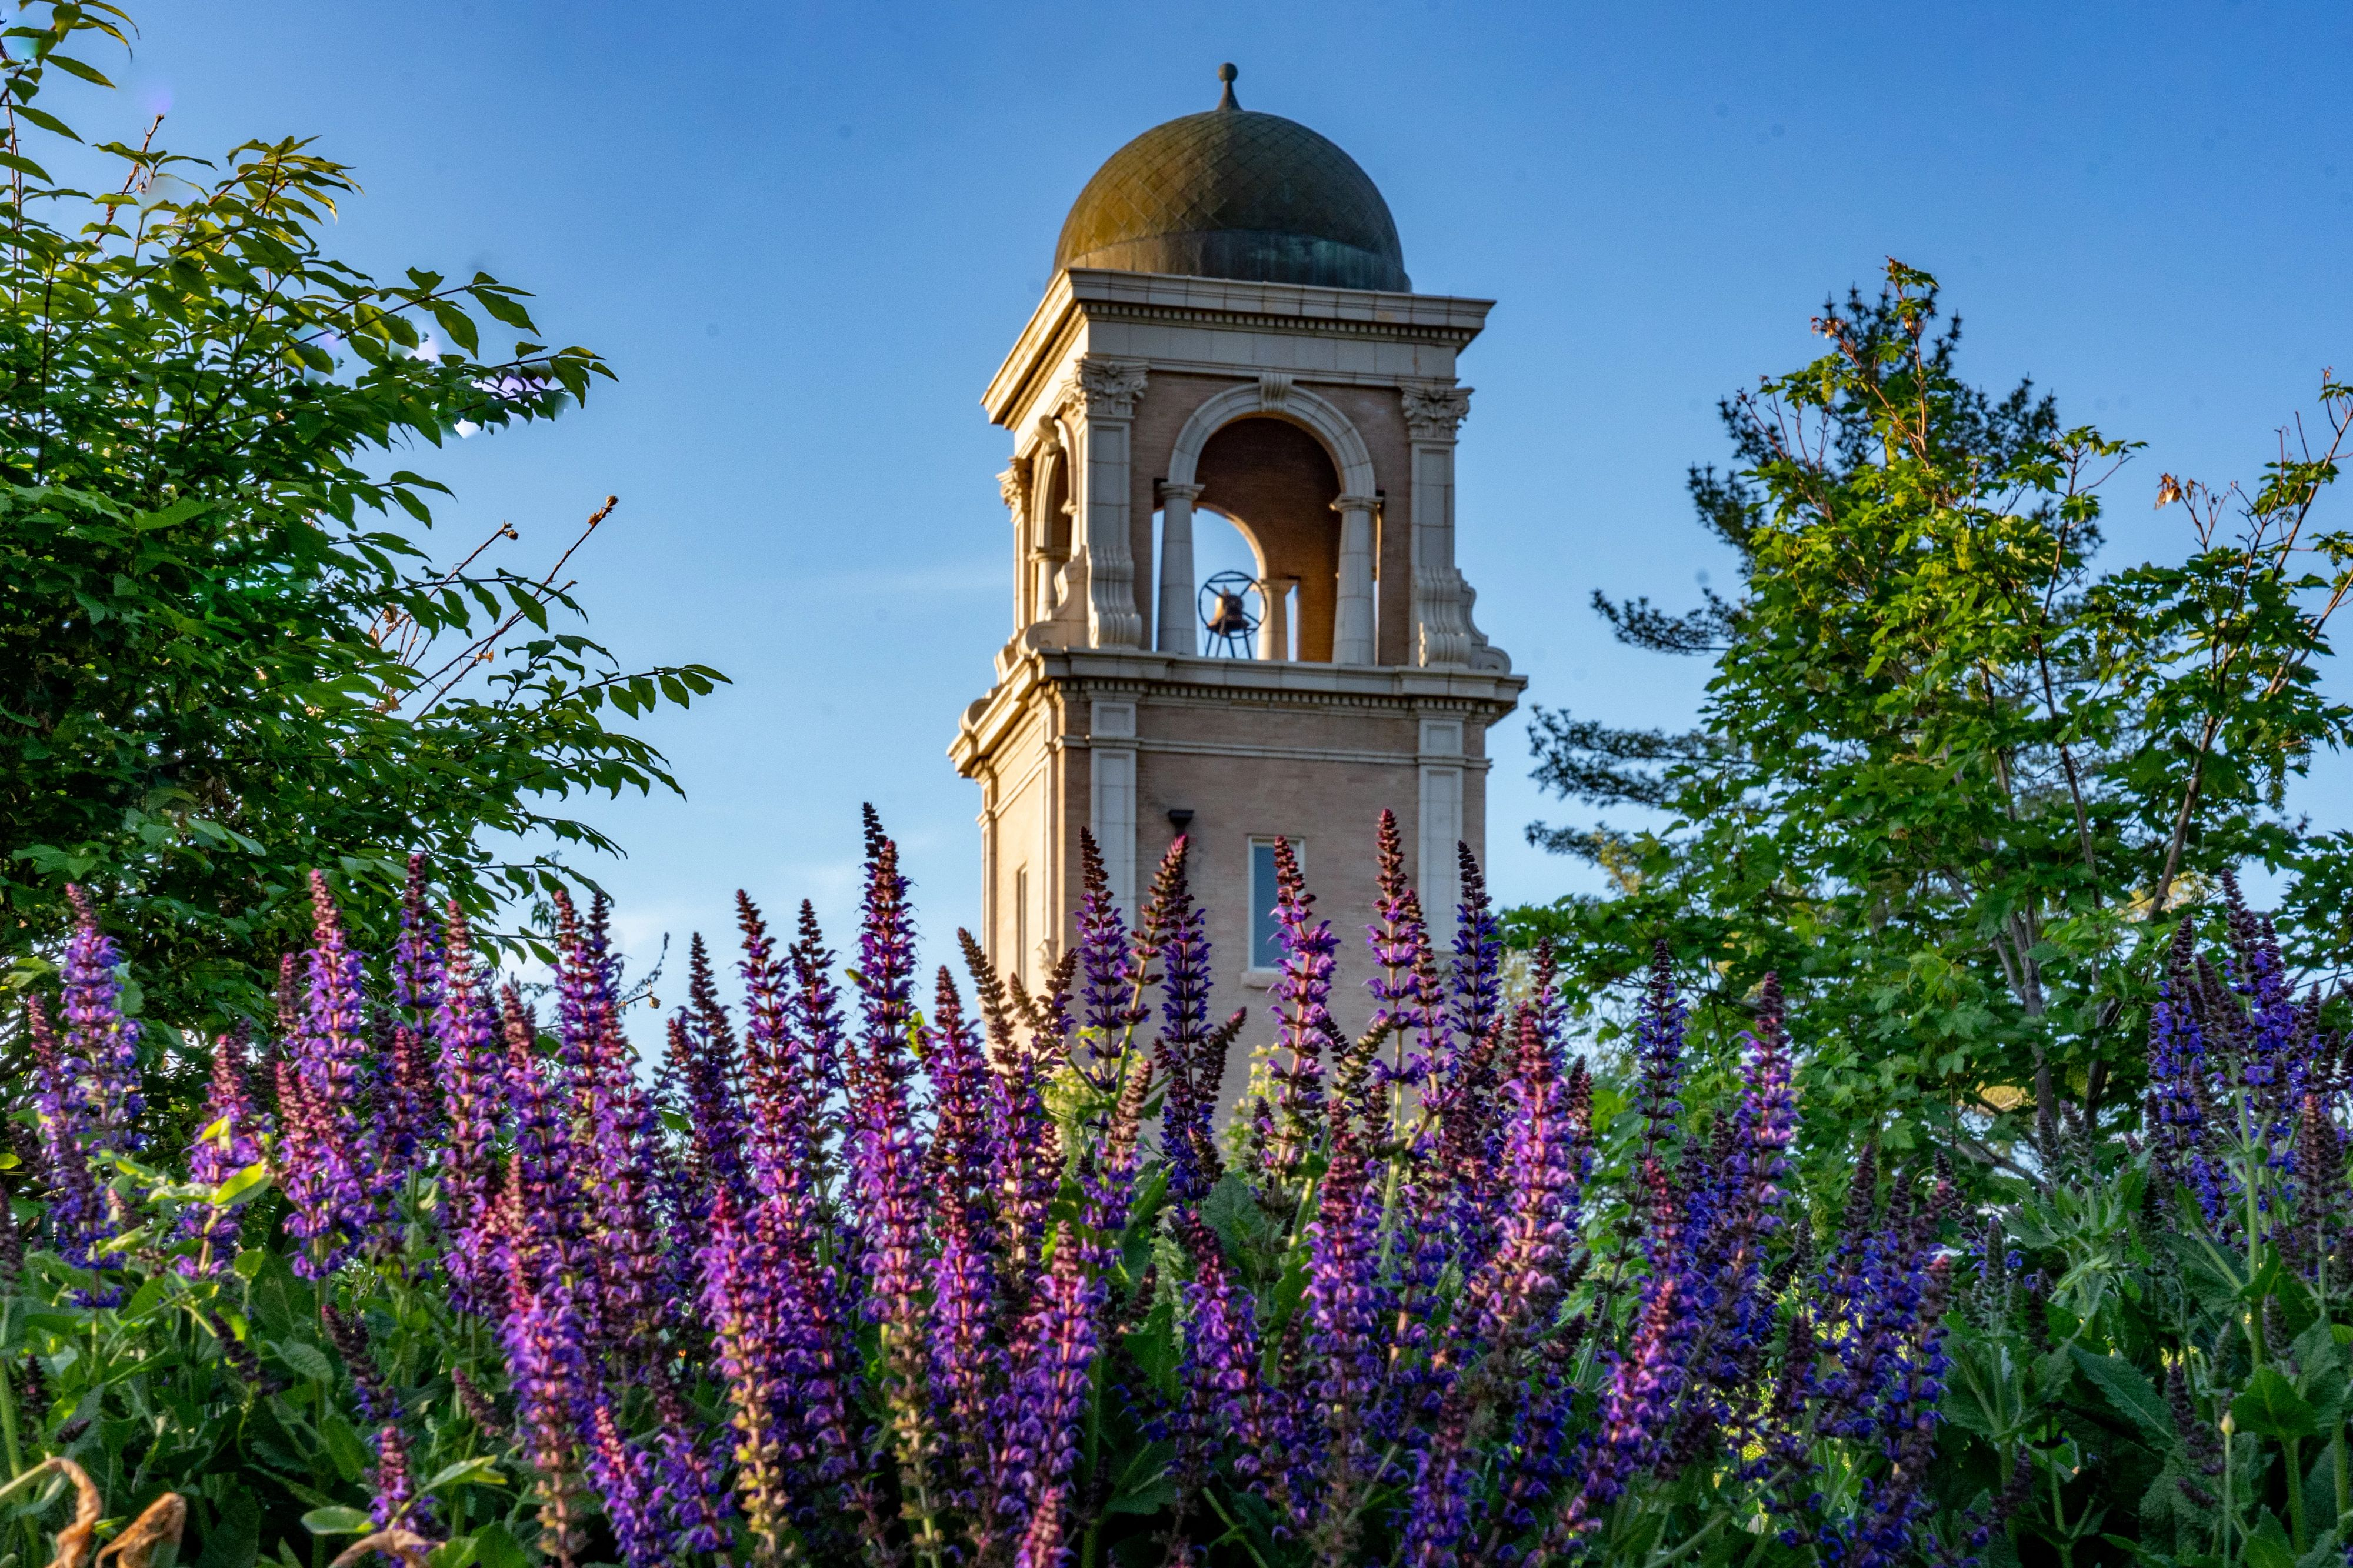 campus photo in spring with bell tower and purple flowers